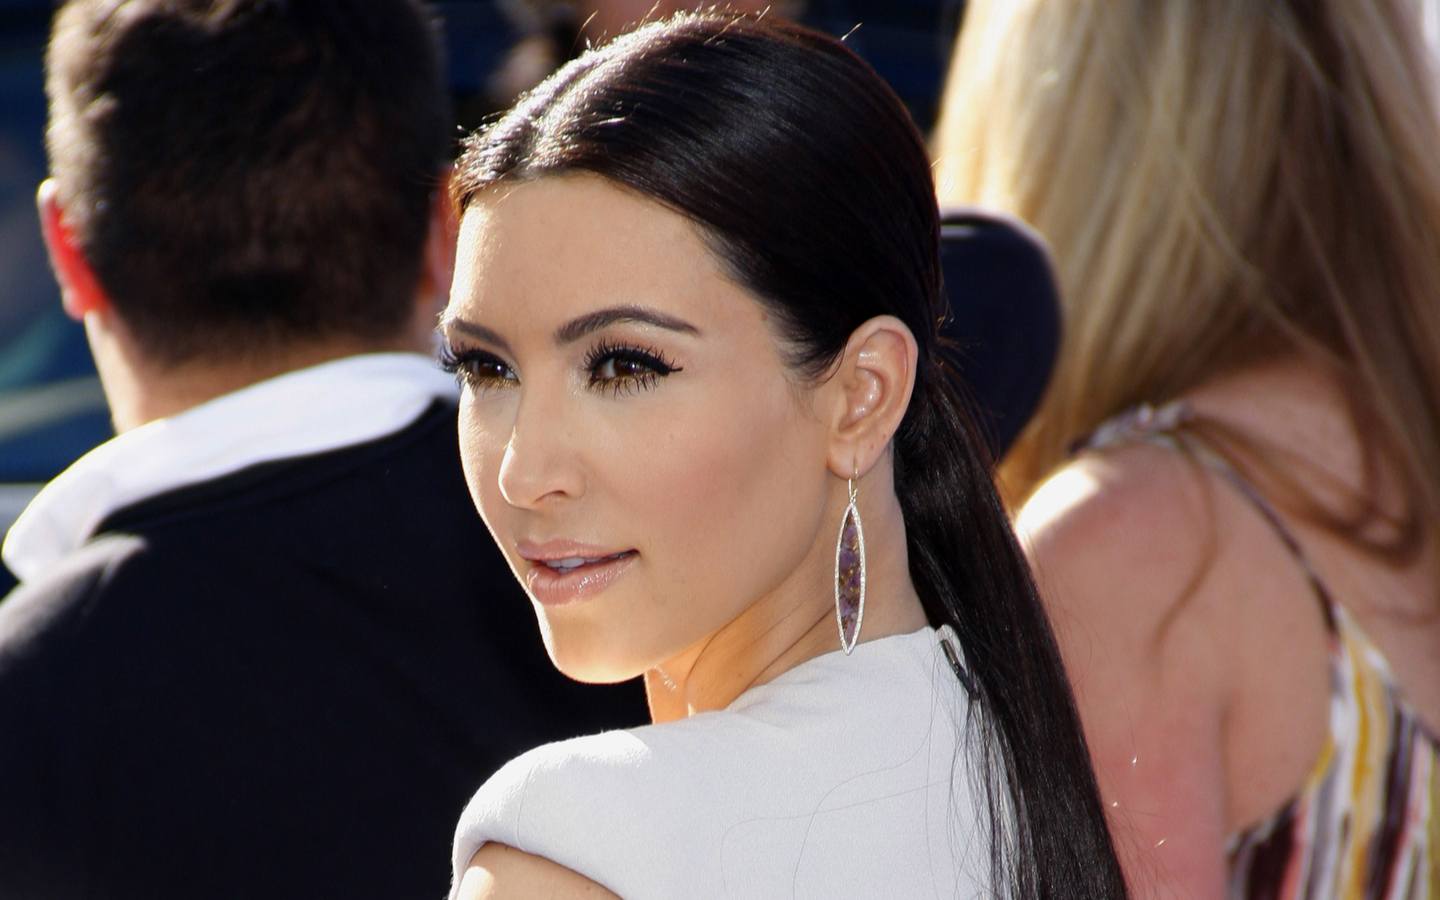 kim loves to vist Dubai frequently